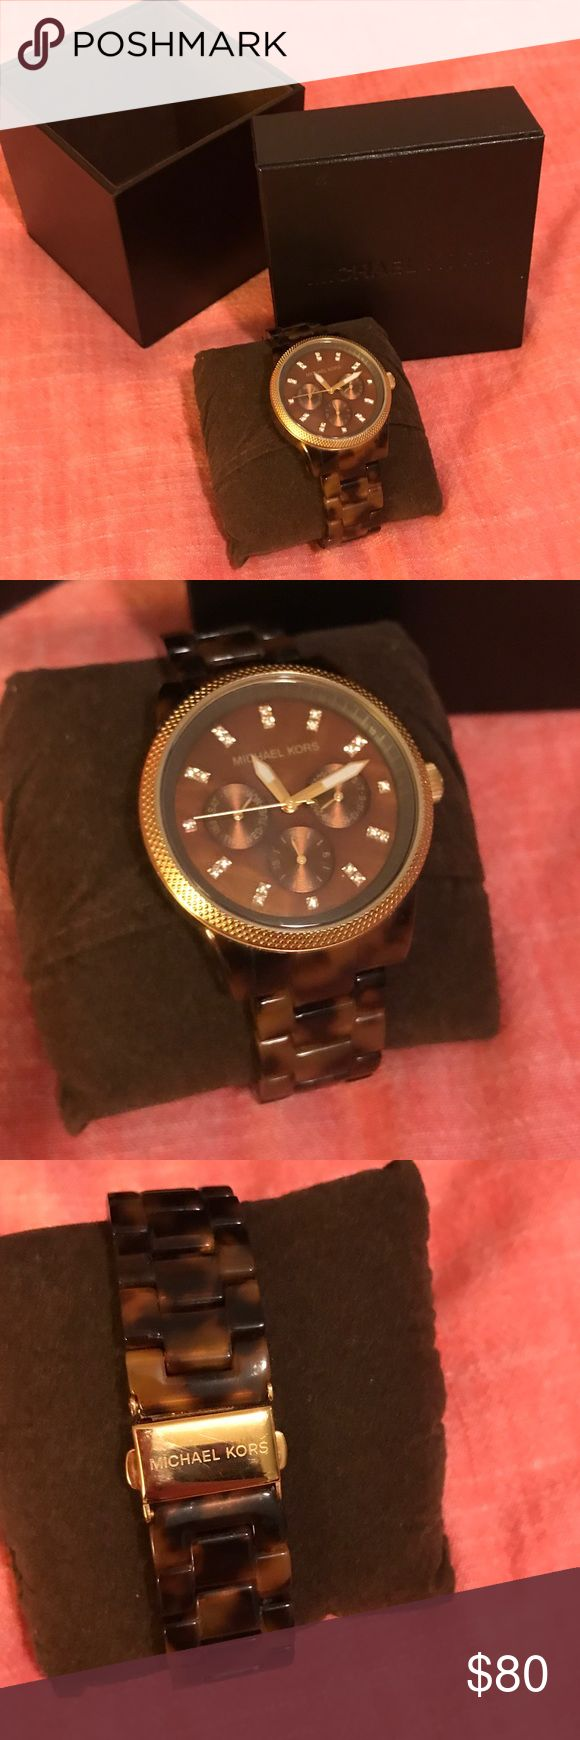 Michael Kors Tortoise Shell Watch Like New in Box Barely worn beautiful Michael Kors watch with Tortoise acrylic band with gold and quartz accents. Michael Kors Accessories Watches